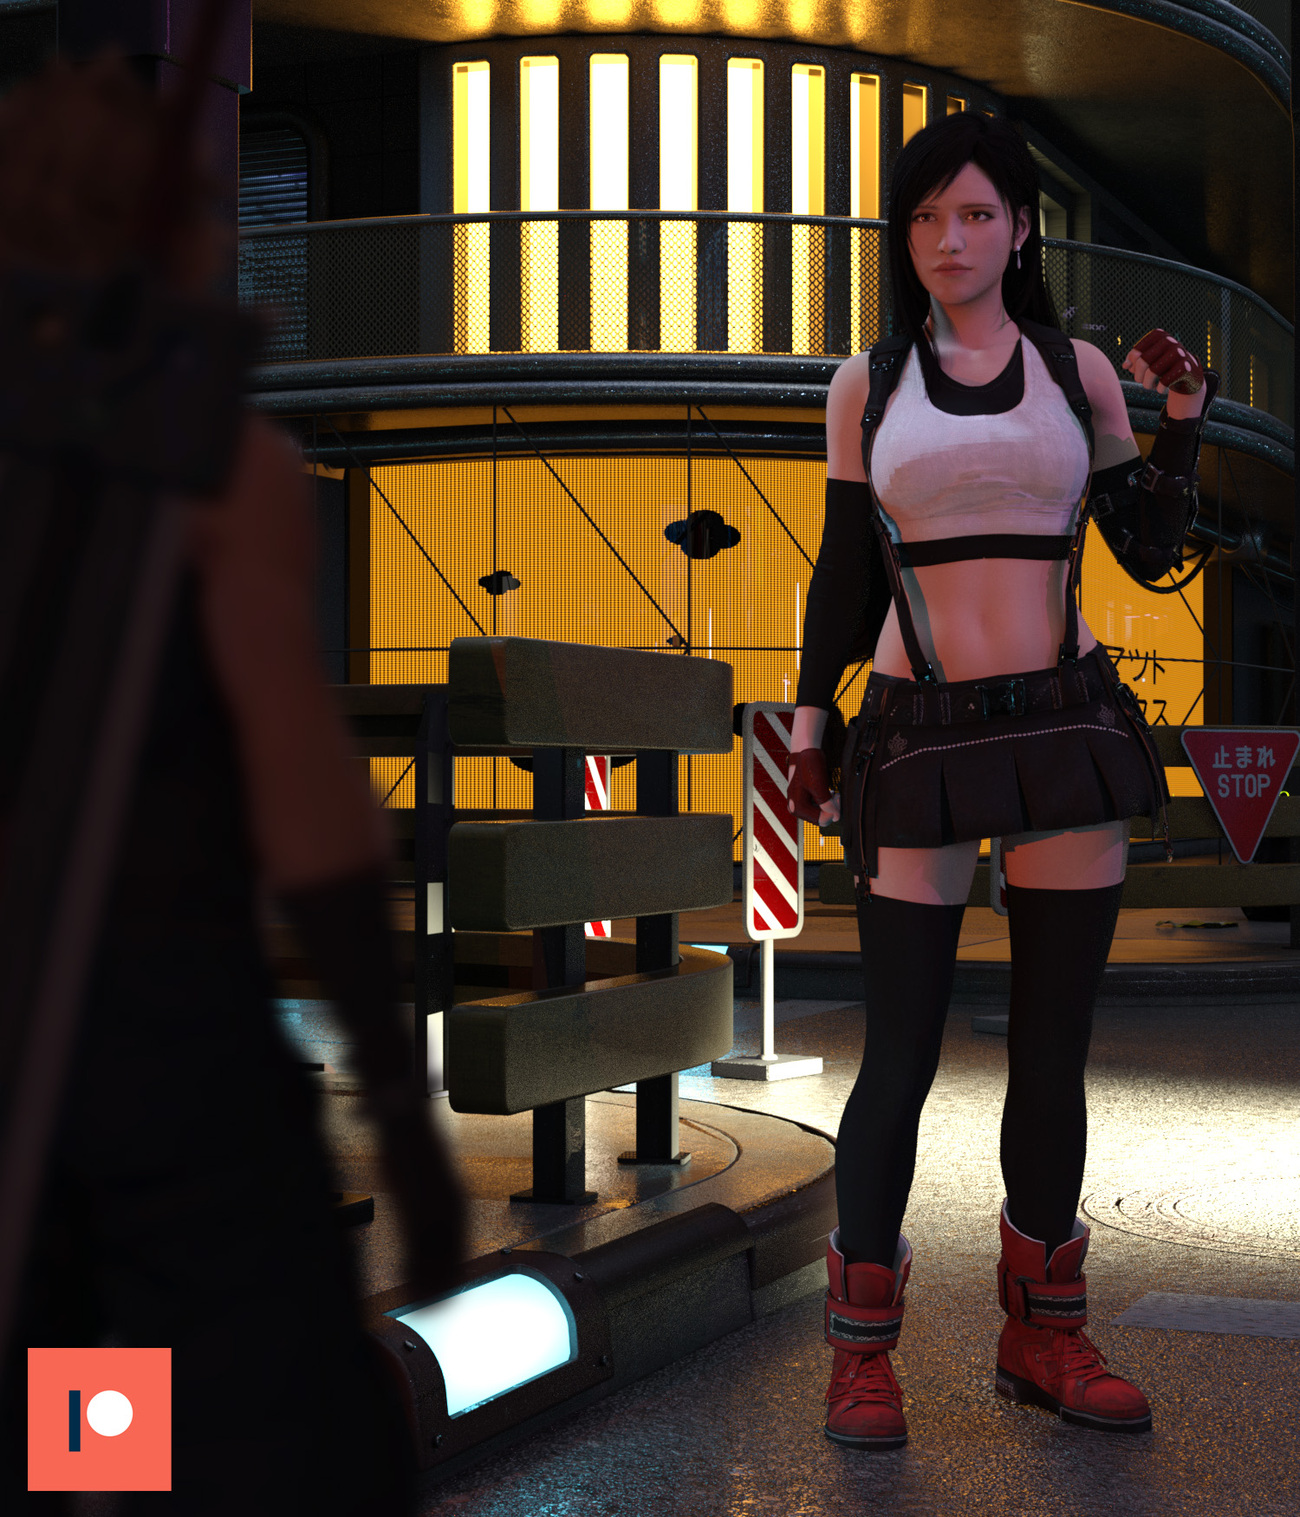 Tifa by lstowe